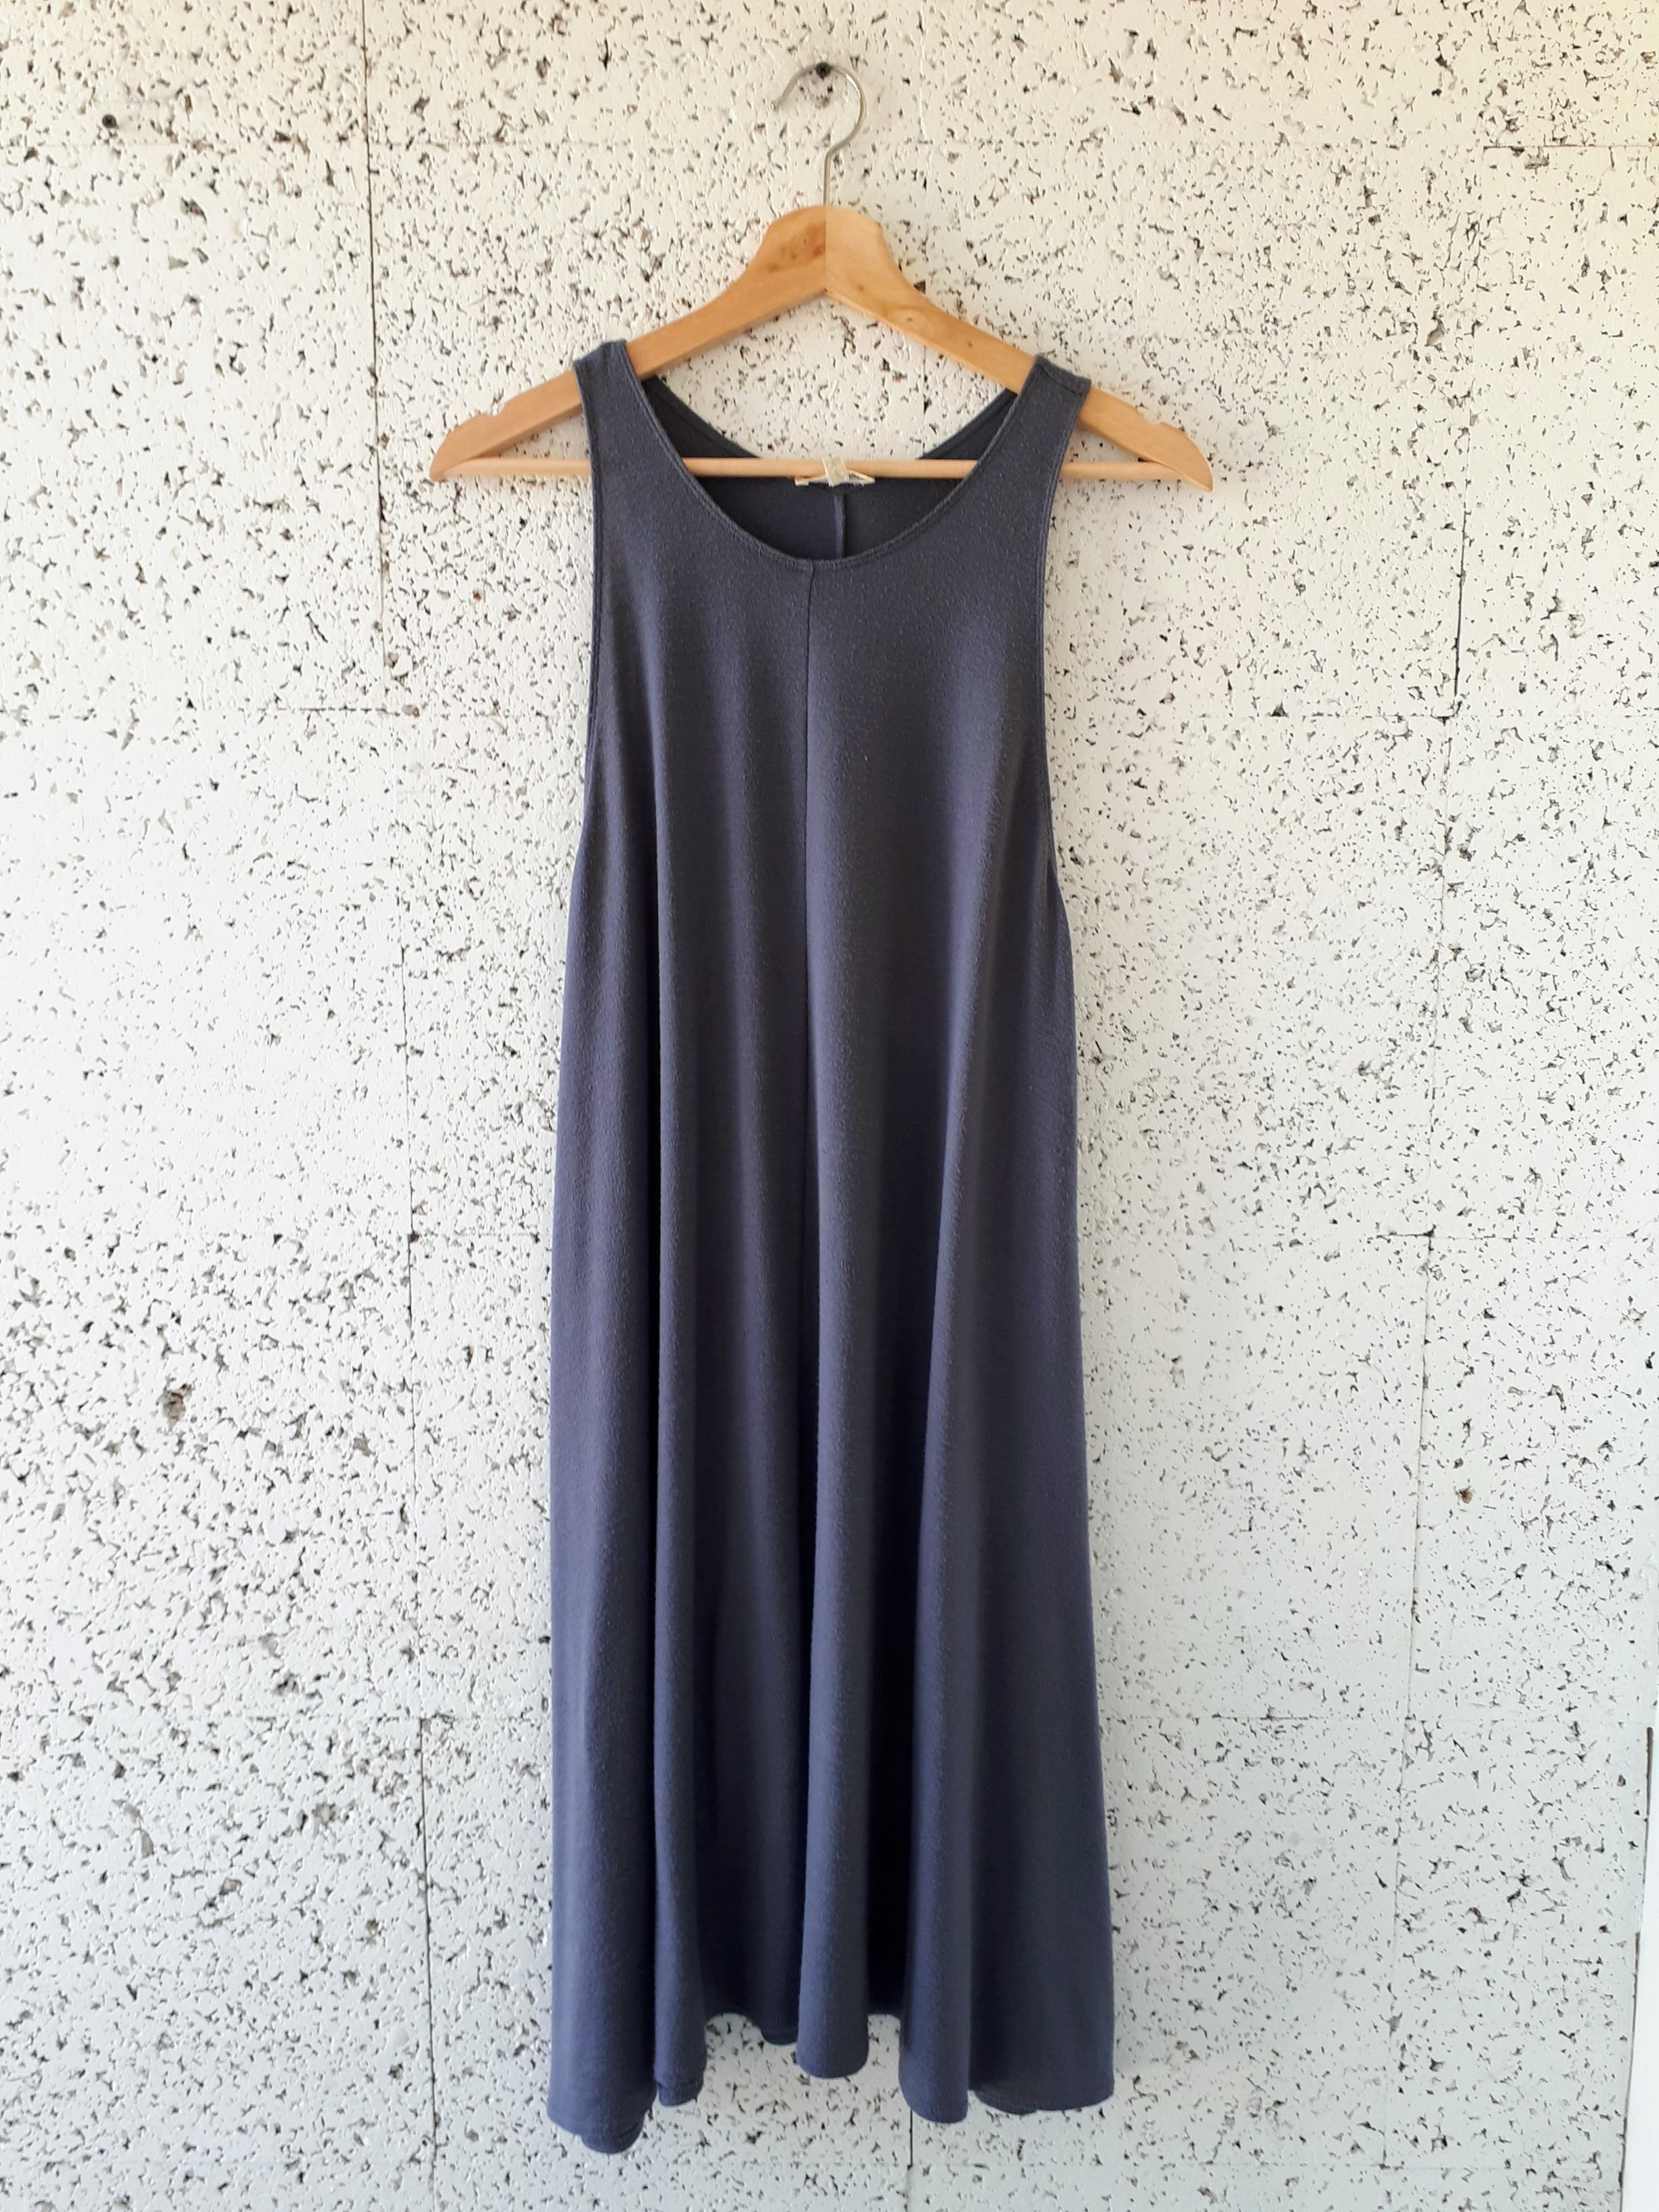 Wilfred dress; Size L, $36